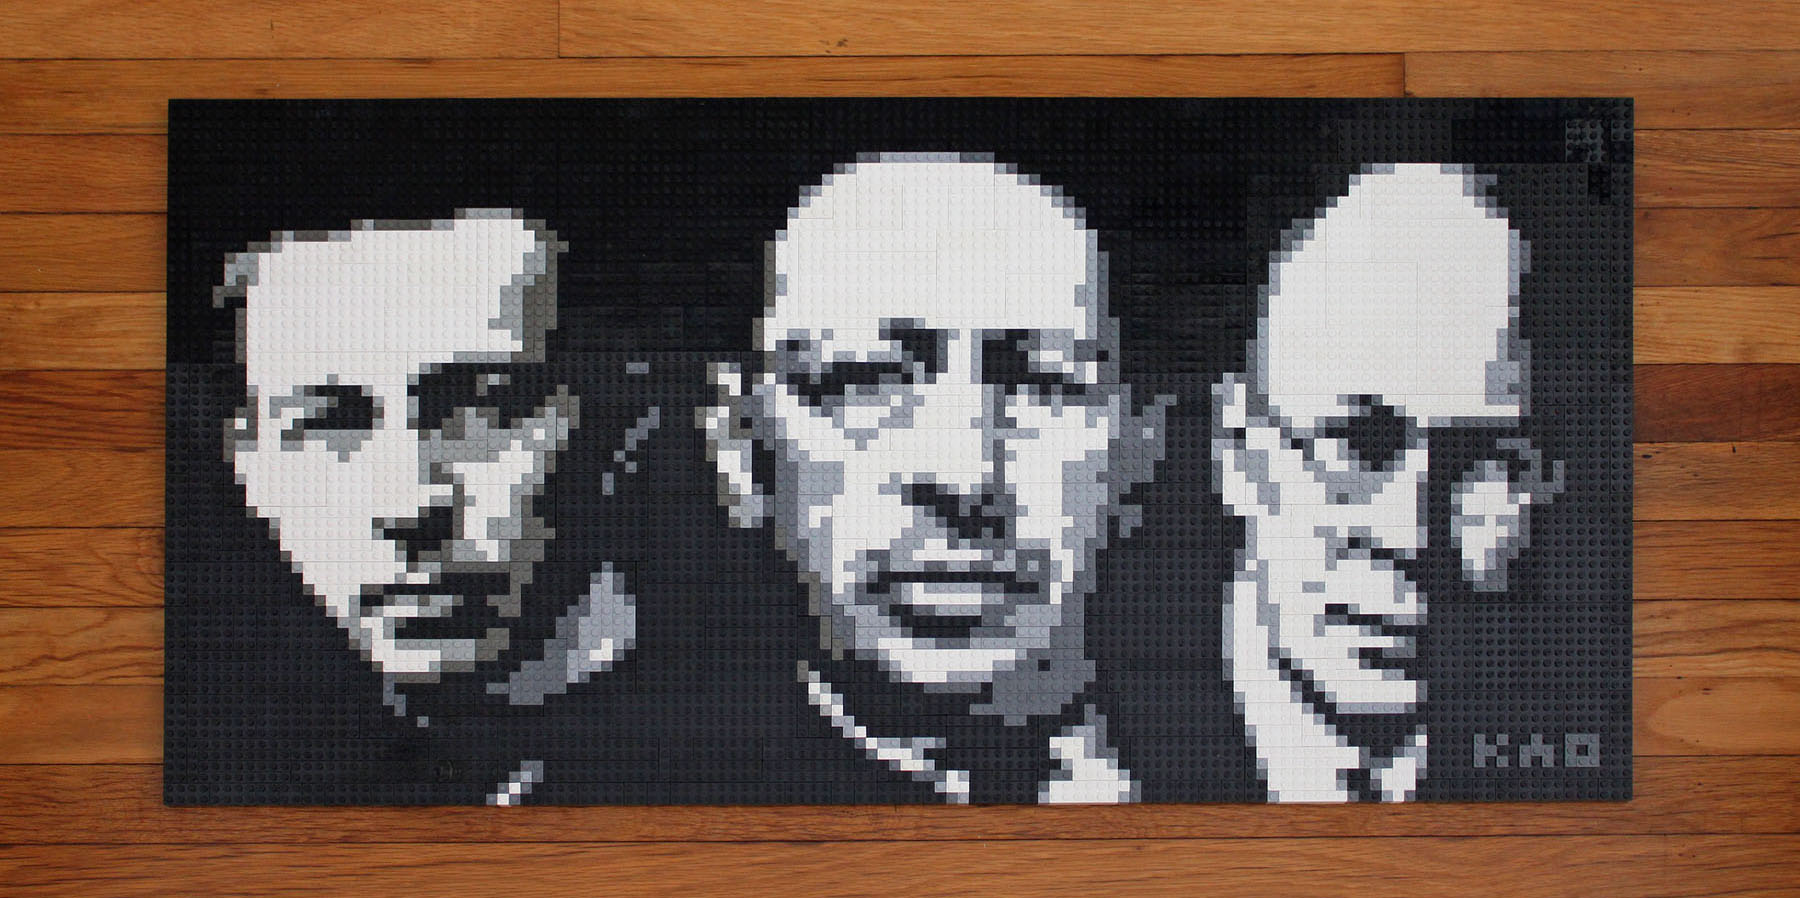 LEGO Mosaic full view